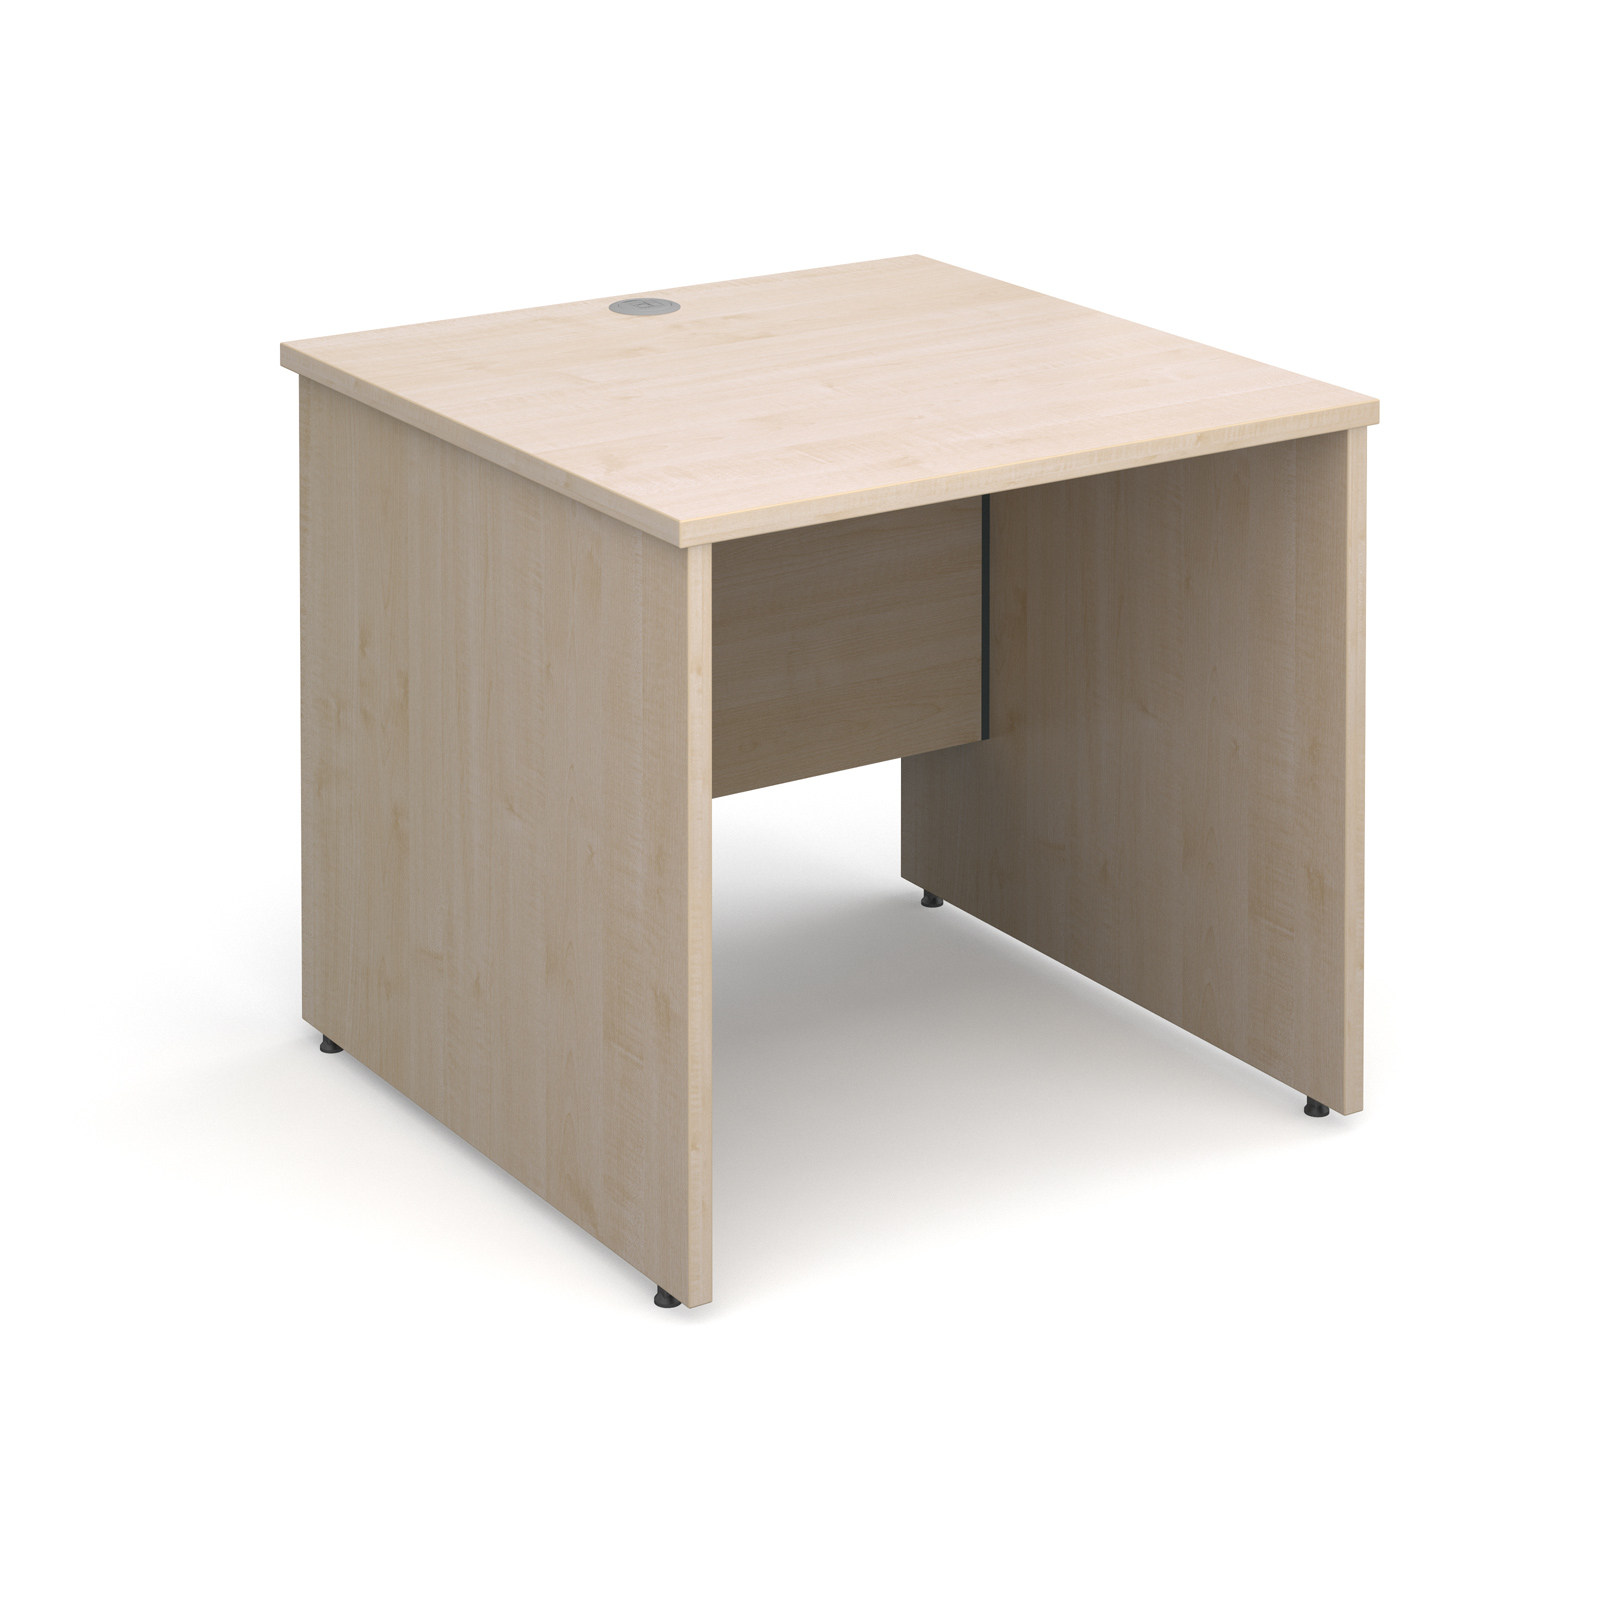 Dams Maestro 25 PL Maple Desk | Straight